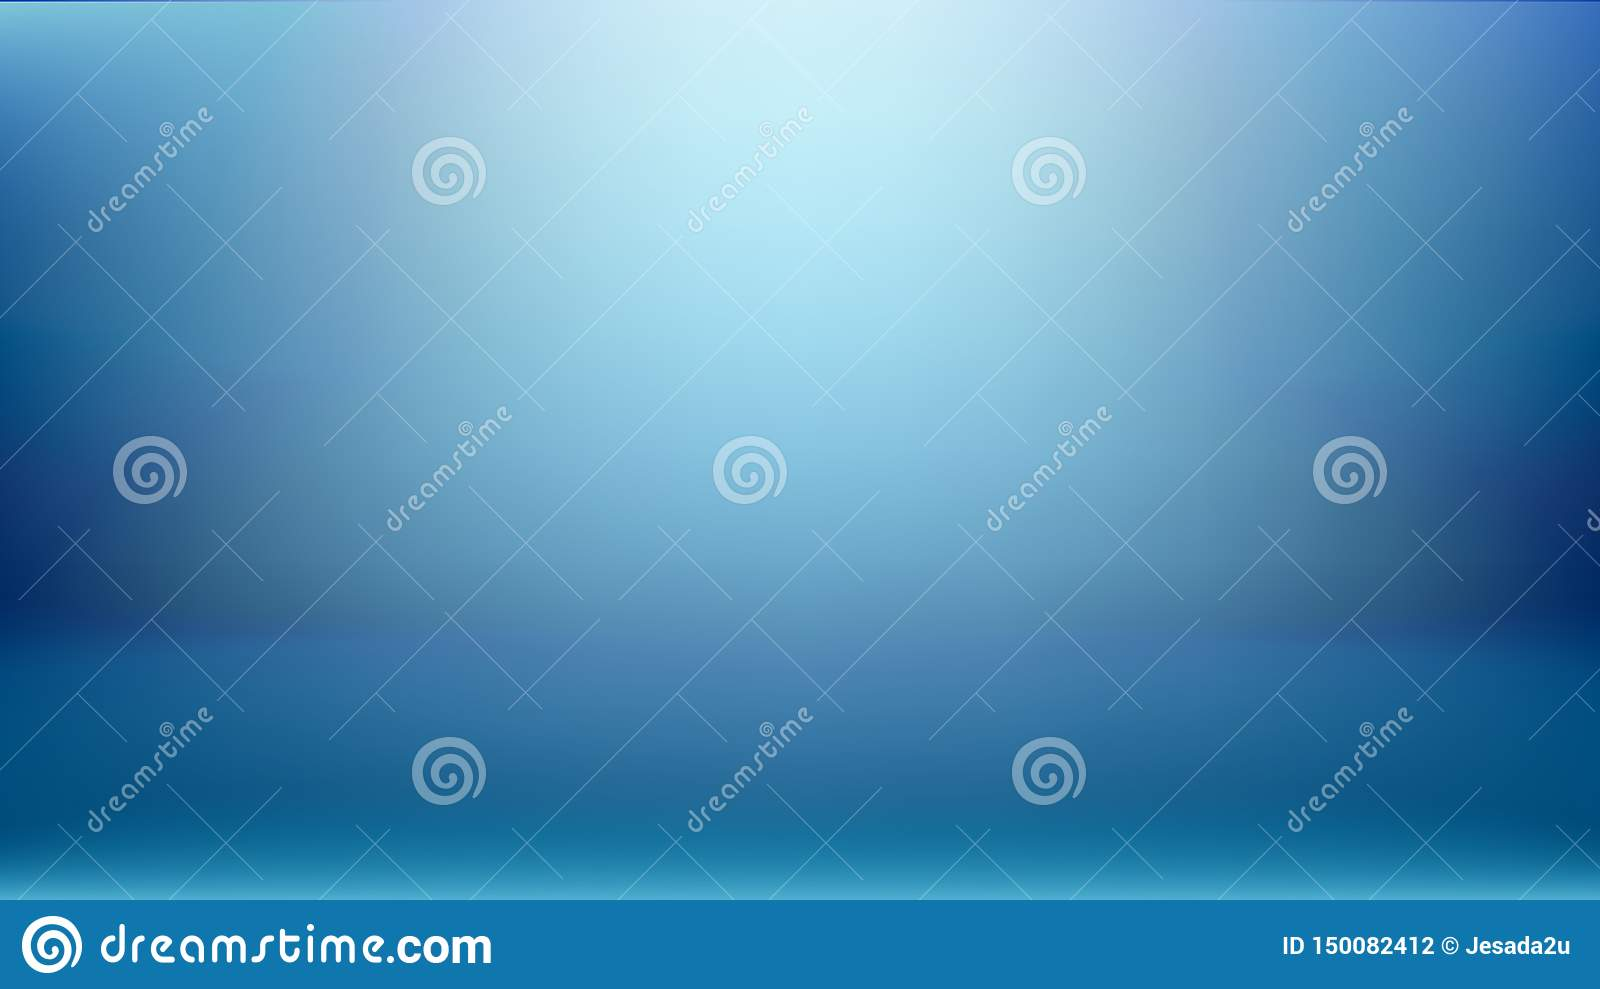 Simple Blue Studio Background Used As Display Your Products Montage Design Backdrop Stock Vector Illustration Of Radial Blue 150082412